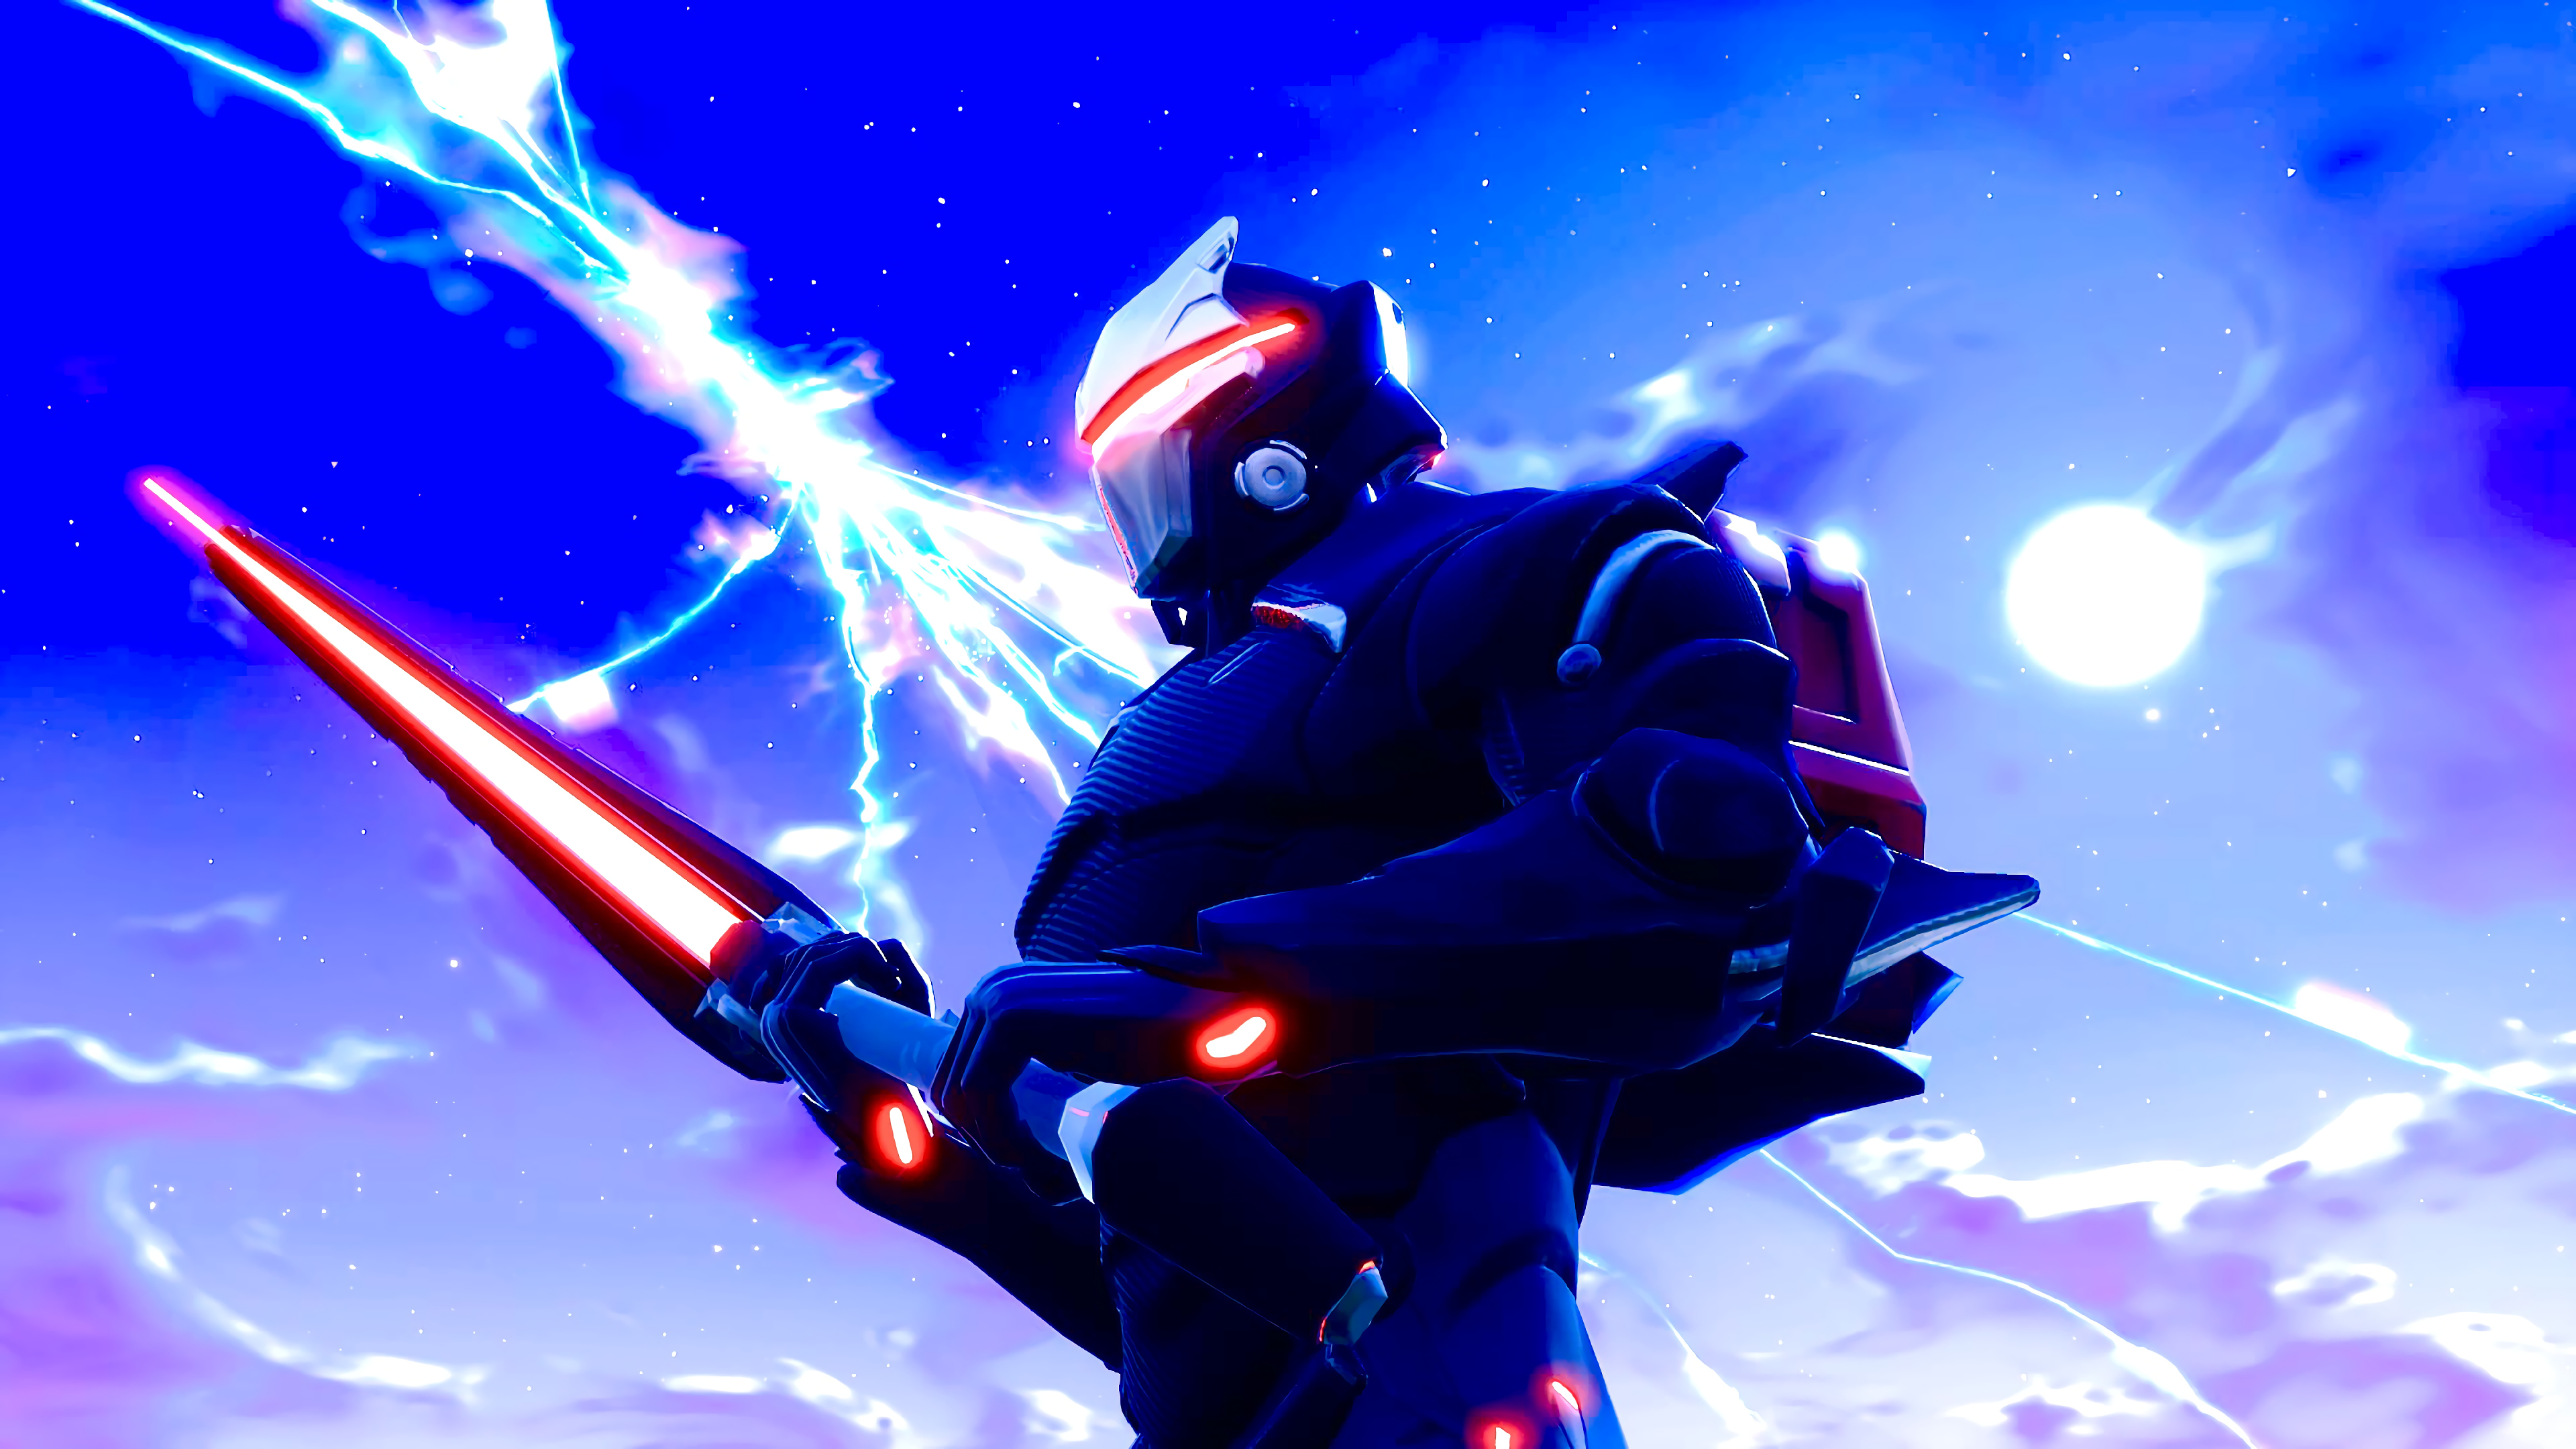 Omega Fortnite 4KHD Wallpapers HD Wallpapers 3840x2160